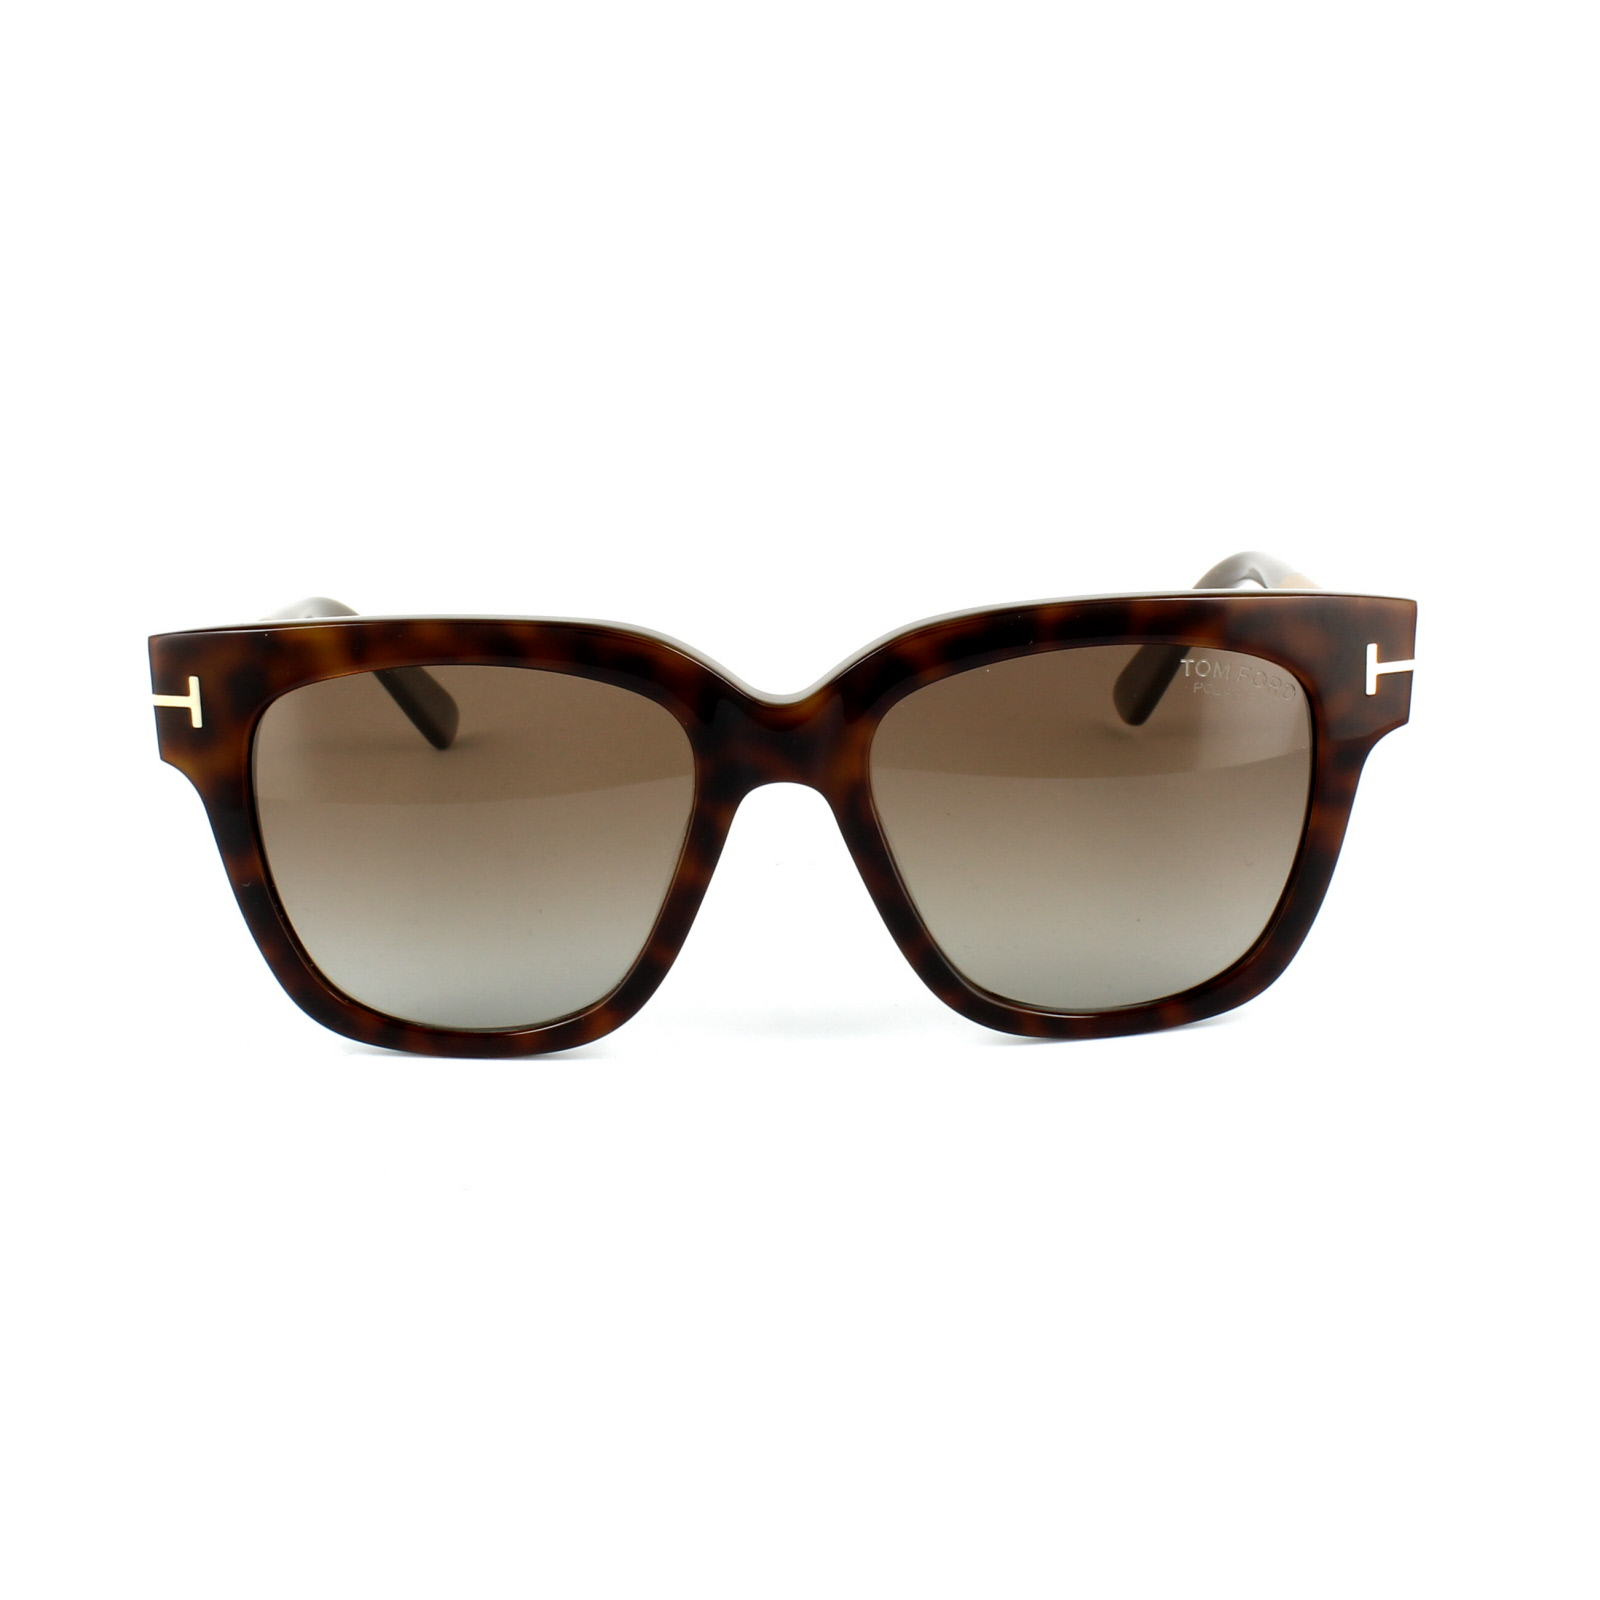 55103019e2be Sentinel Tom Ford Sunglasses 0436 TRACY 56H Havana Brown Polarized